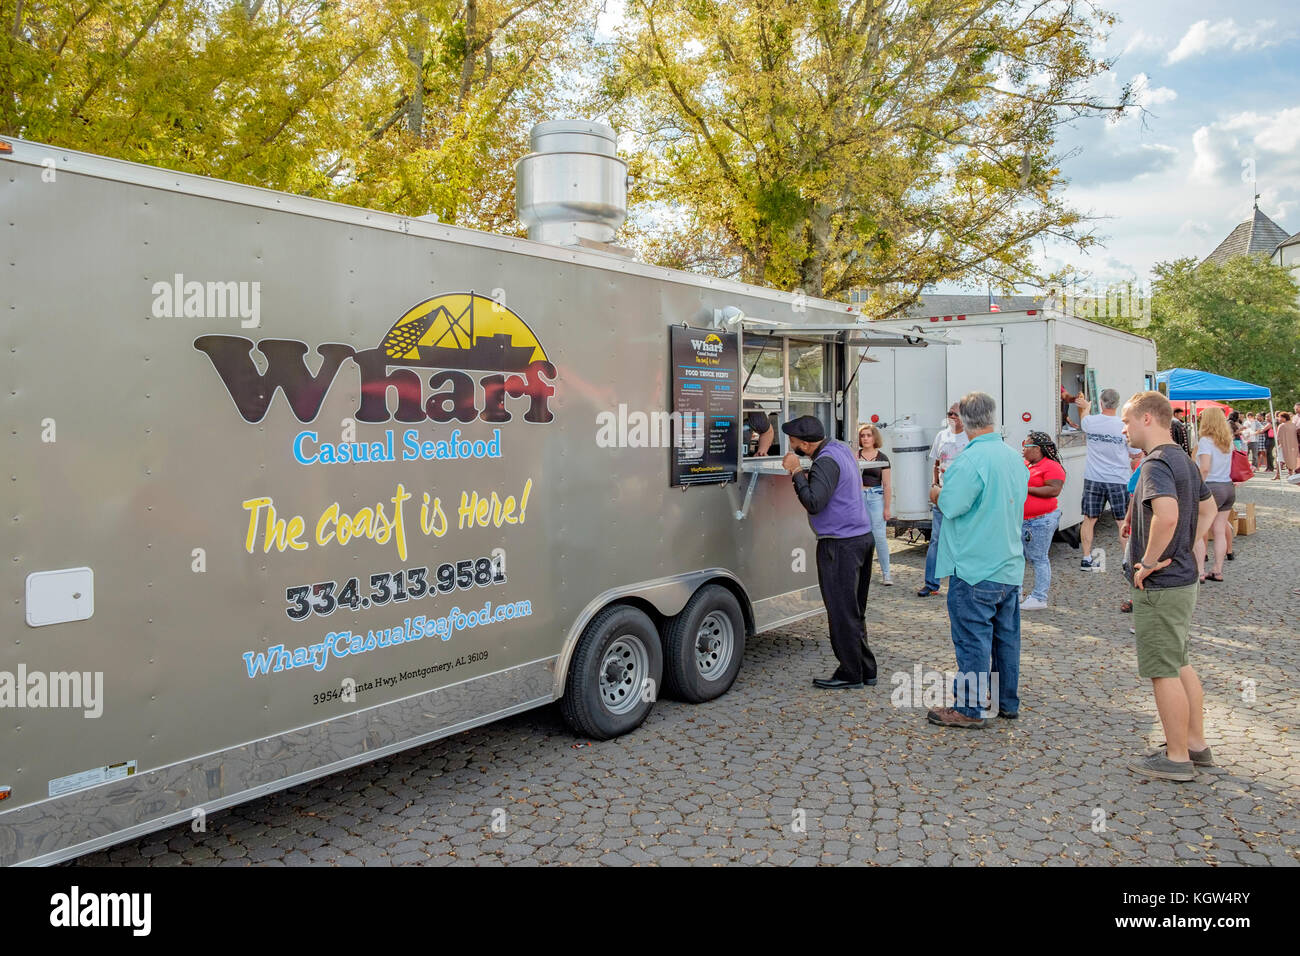 Customers at a food truck festival in a small community in Montgomery Alabama, USA, wait in line, or queue, to order - Stock Image